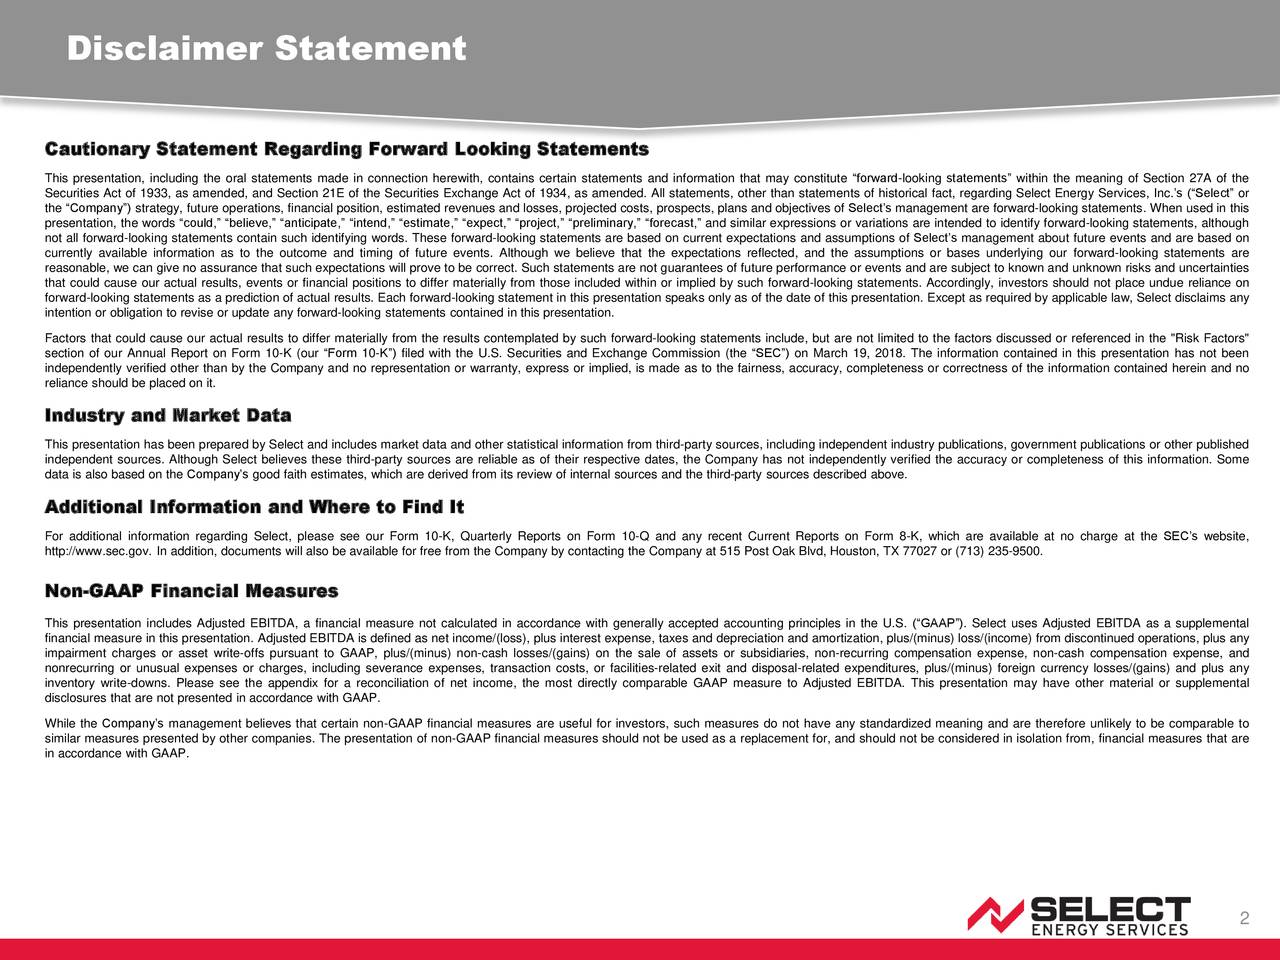 """Cautionary Statement Regarding Forward Looking Statements This presentation, including the oral statements made in connection herewith, contains certain statements and information that may constitute """"forward-looking statements"""" within the meaning of Section 27A of the Securities Act of 1933, as amended, and Section 21E of the Securities Exchange Act of 1934, as amended. All statements, other than statements of historical fact, regarding Select Energy Services, Inc.'s (""""Select"""" or the """"Company"""") strategy, future operations, financial position, estimated revenues and losses, projected costs, prospects, plans and objectives of Select's management are forward-looking statements. When used in this presentation, the words """"could,"""" """"believe,"""" """"anticipate,"""" """"intend,"""" """"estimate,"""" """"expect,"""" """"project,"""" """"preliminary,"""" """"forecast,"""" and similar expressions or variations are intended to identify forward-looking statements, although not all forward-looking statements contain such identifying words. These forward-looking statements are based on current expectations and assumptions of Select's management about future events and are based on currently available information as to the outcome and timing of future events. Although we believe that the expectations reflected, and the assumptions or bases underlying our forward-looking statements are reasonable, we can give no assurance that such expectations will prove to be correct. Such statements are not guarantees of future performance or events and are subject to known and unknown risks and uncertainties that could cause our actual results, events or financial positions to differ materially from those included within or implied by such forward-looking statements. Accordingly, investors should not place undue reliance on forward-looking statements as a prediction of actual results. Each forward-looking statement in this presentation speaks only as of the date of this presentation. Except as required by applicable law, Select disclaims """